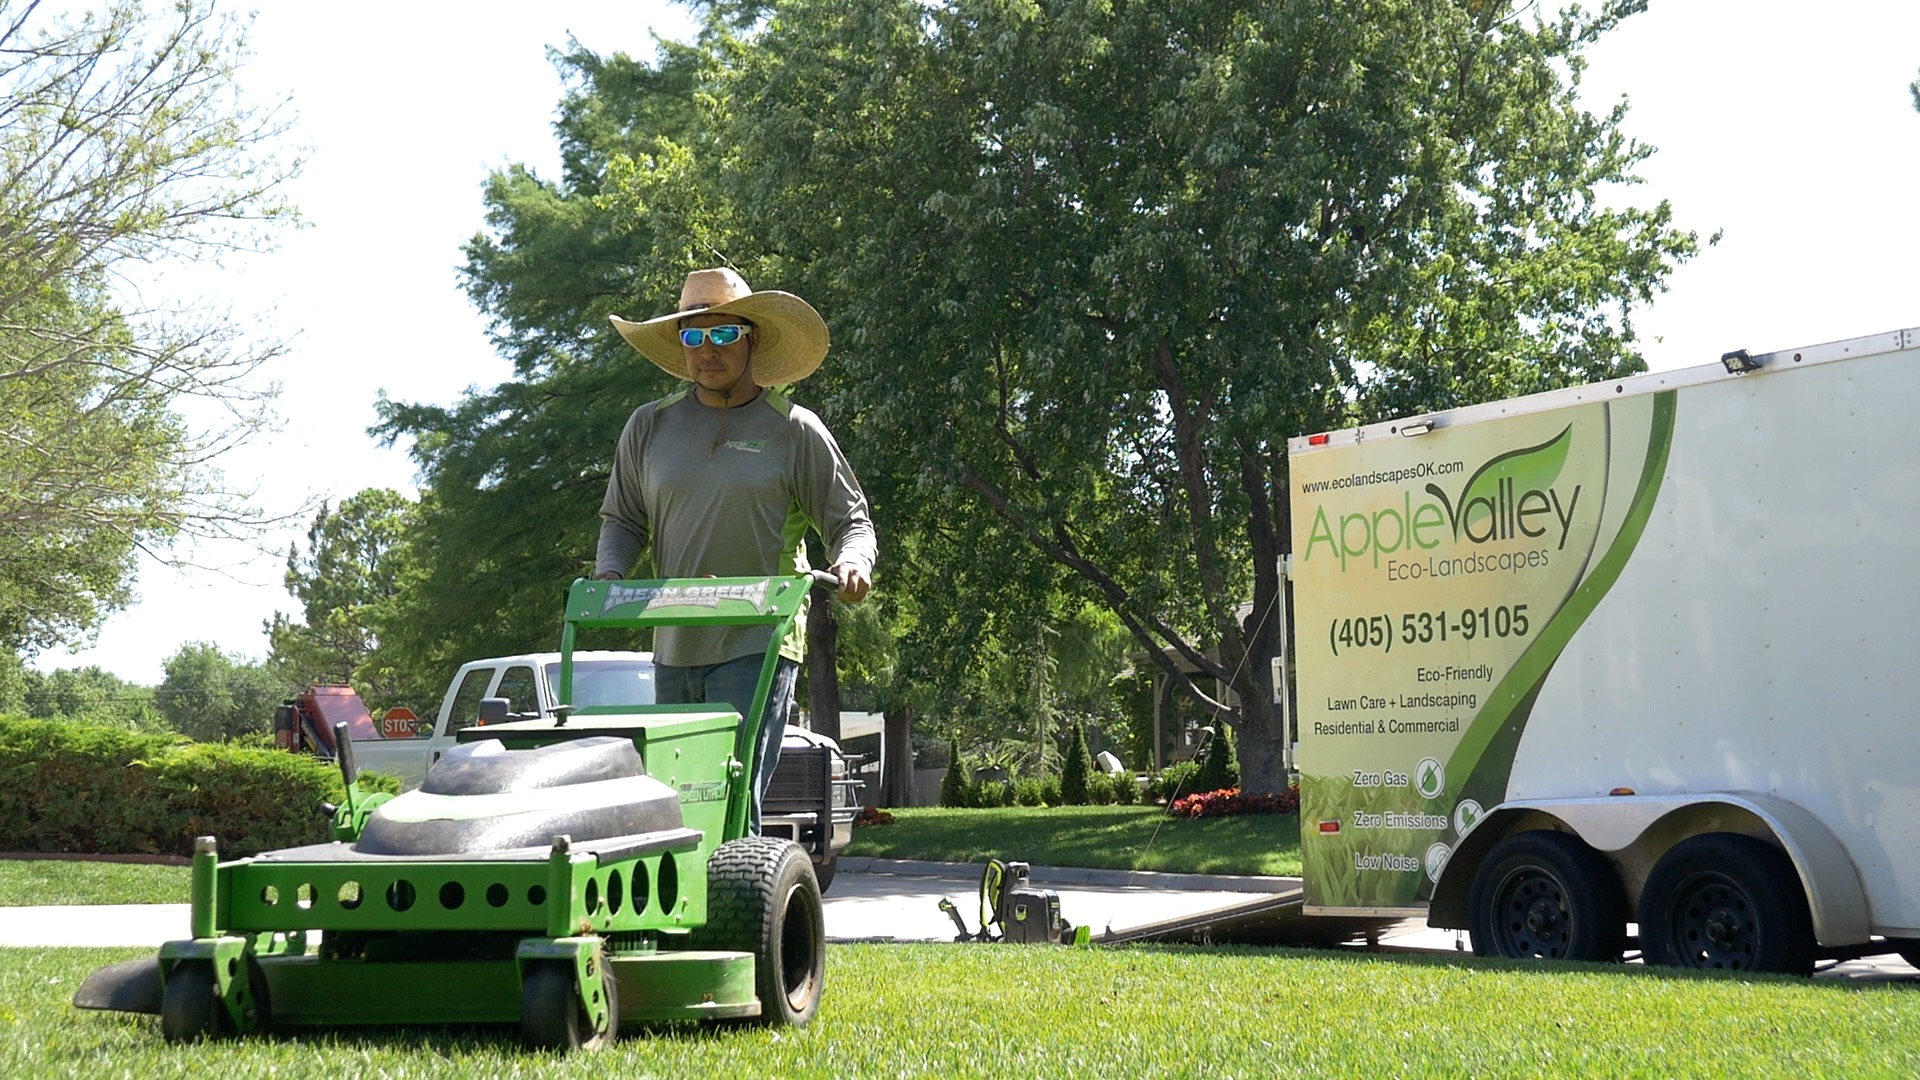 ECO FRIENDLY LAWN CARE U0026 LANDSCAPING